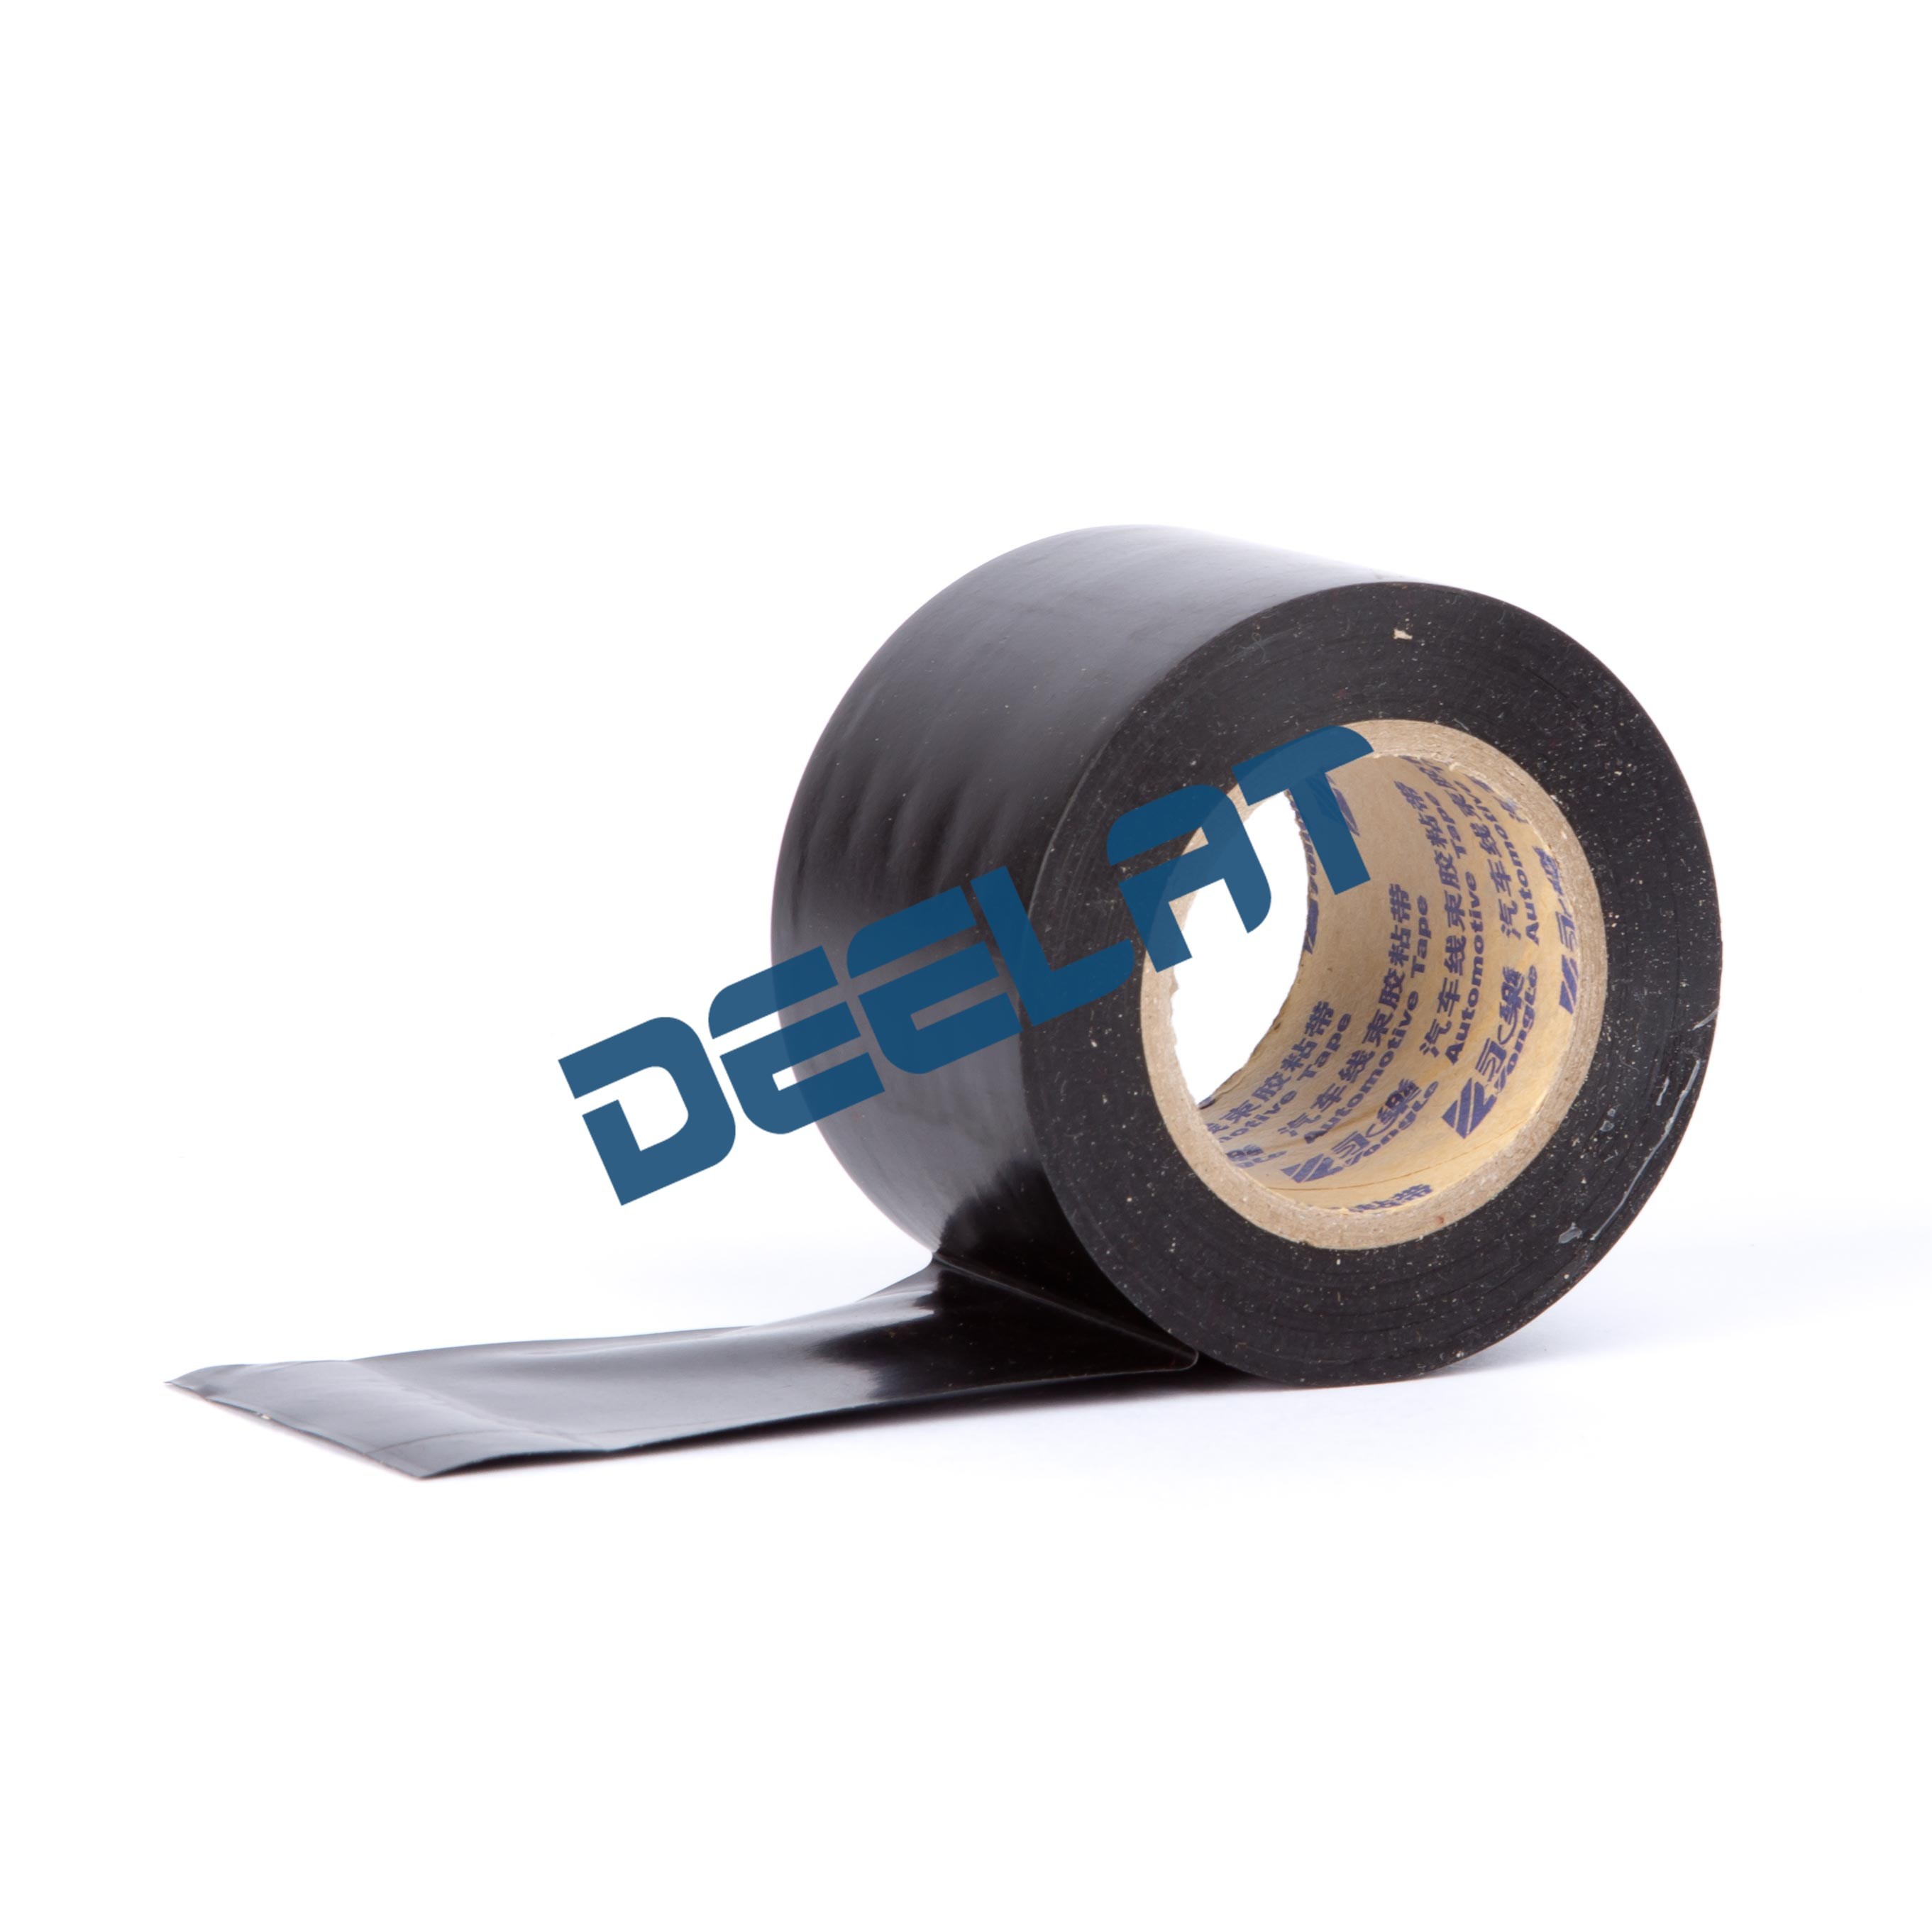 Auto IWre Harness Tape deelat blog automotive wire harness tape uses, types and auto wire harness tape at sewacar.co